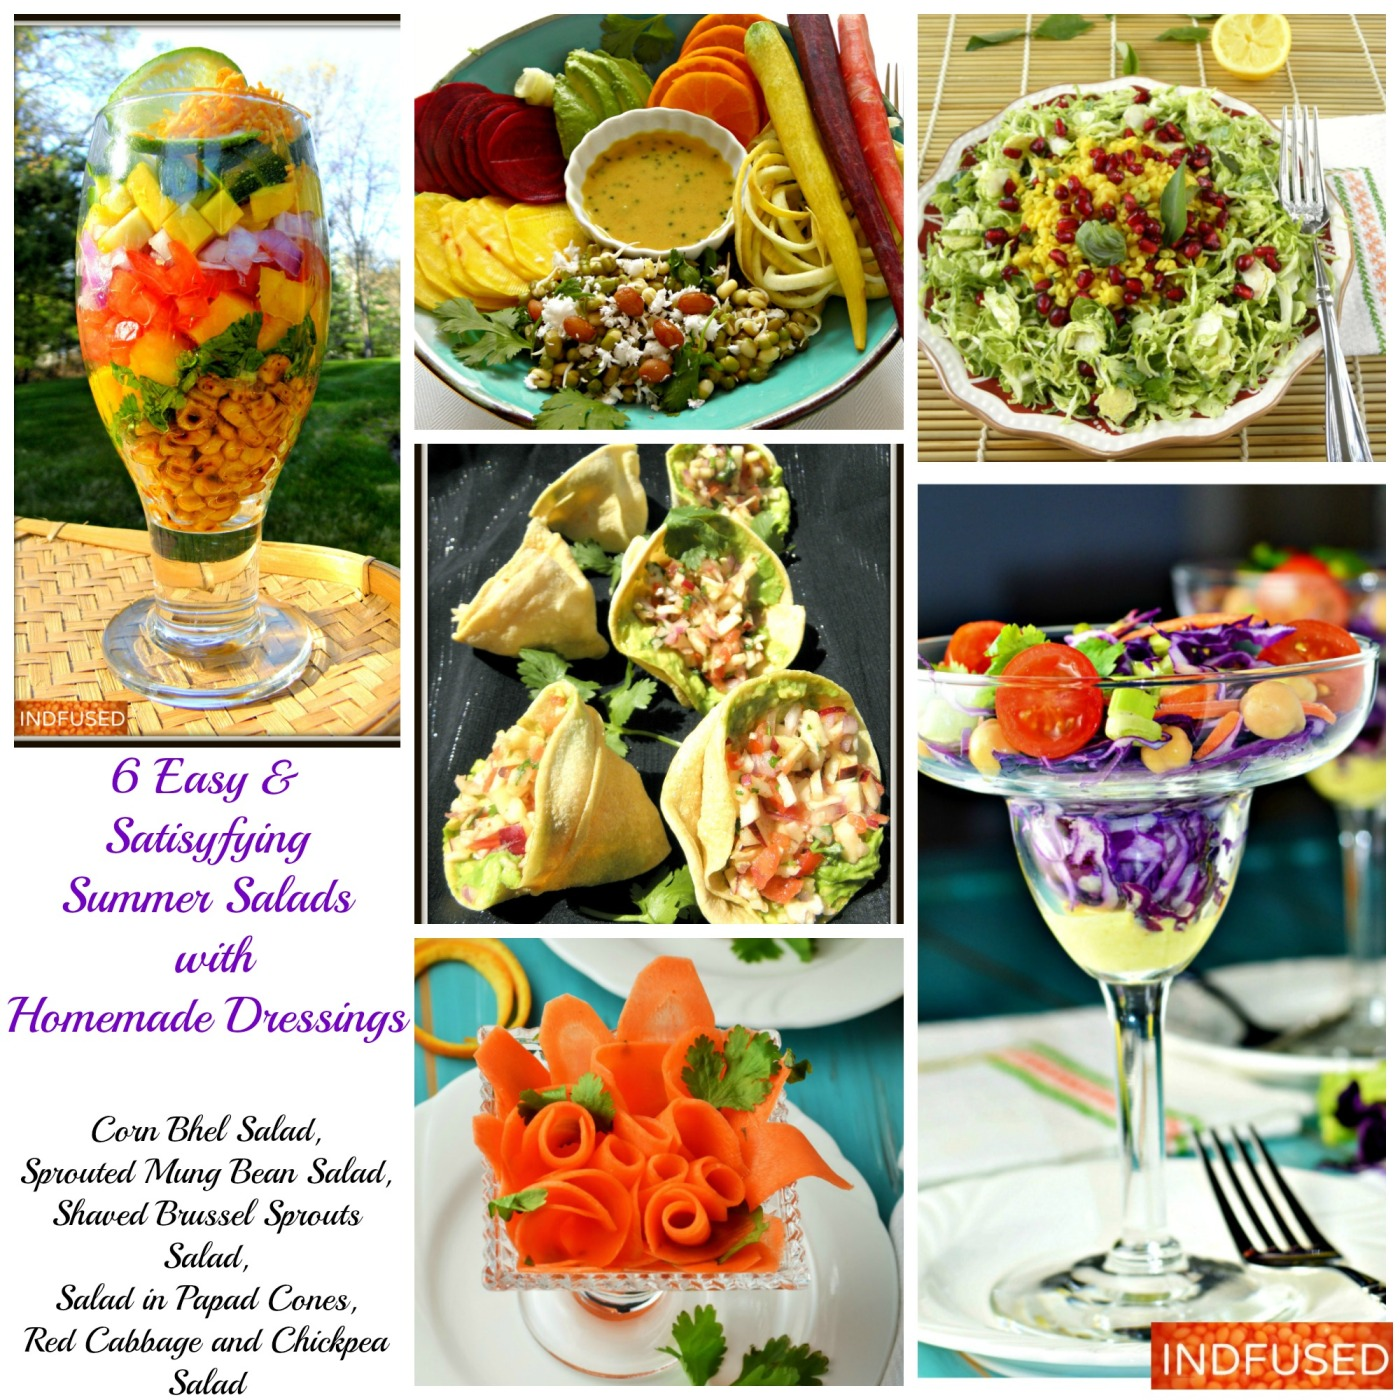 6 Easy & Satisfying Summer Salads with Homemade Dressing